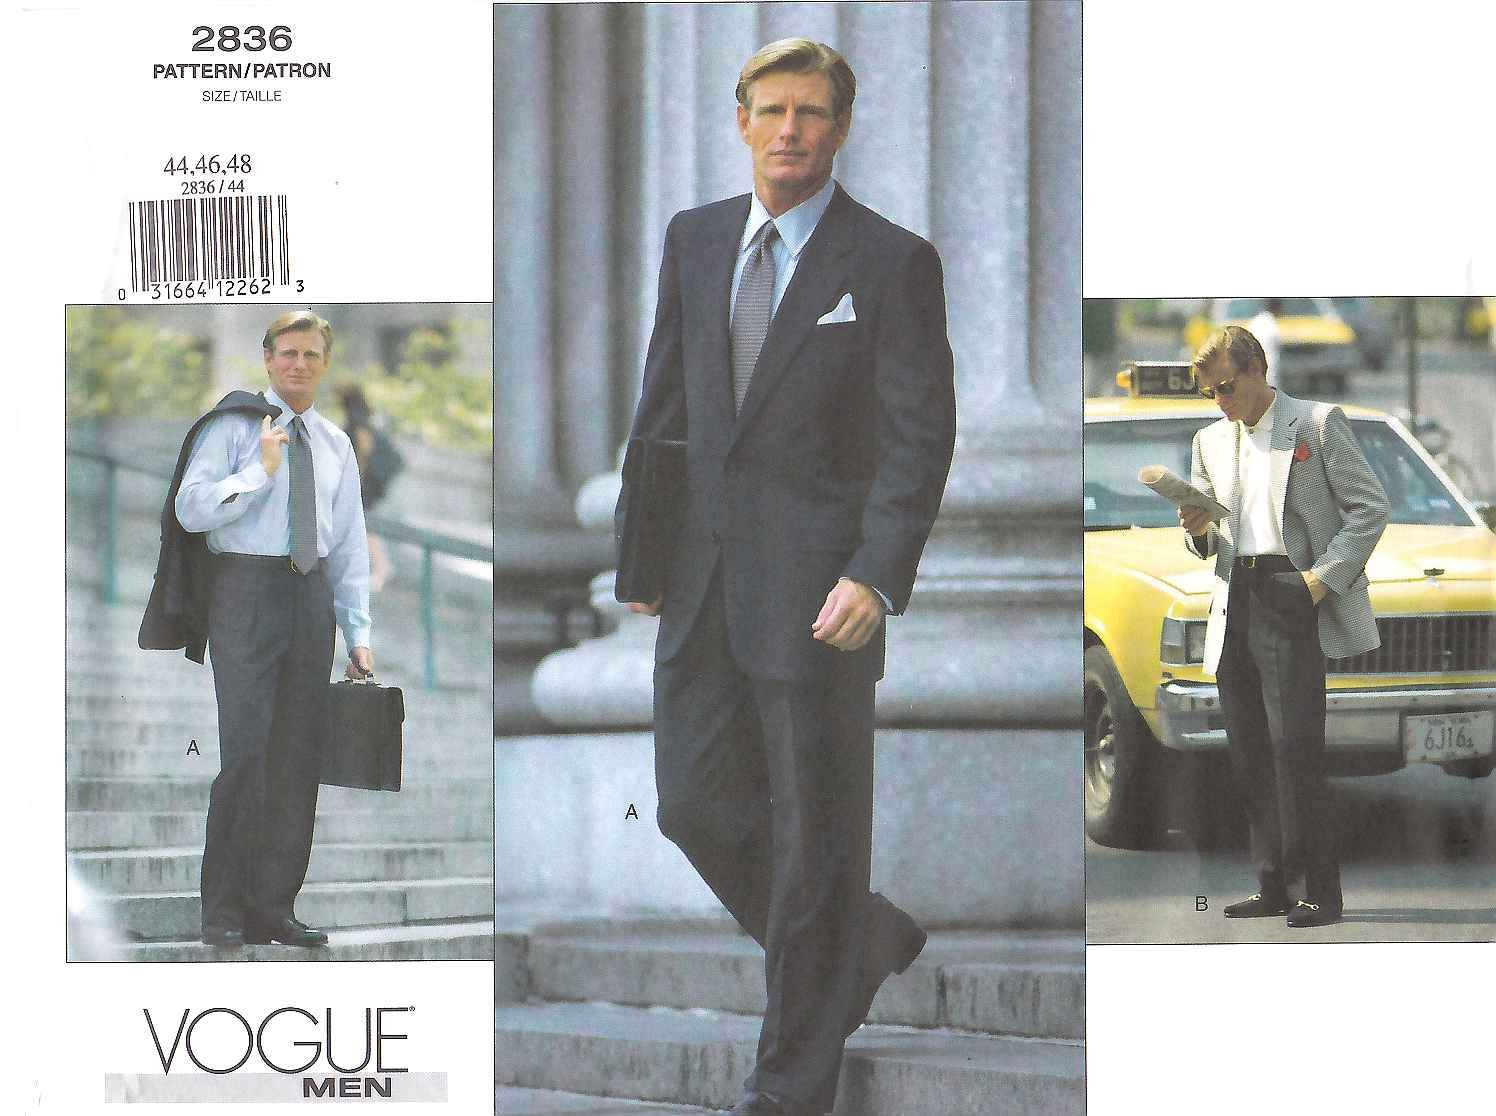 Vogue Sewing Pattern 2836 Mens Size 44-46-48 Jacket Pants Suit Sportscoat